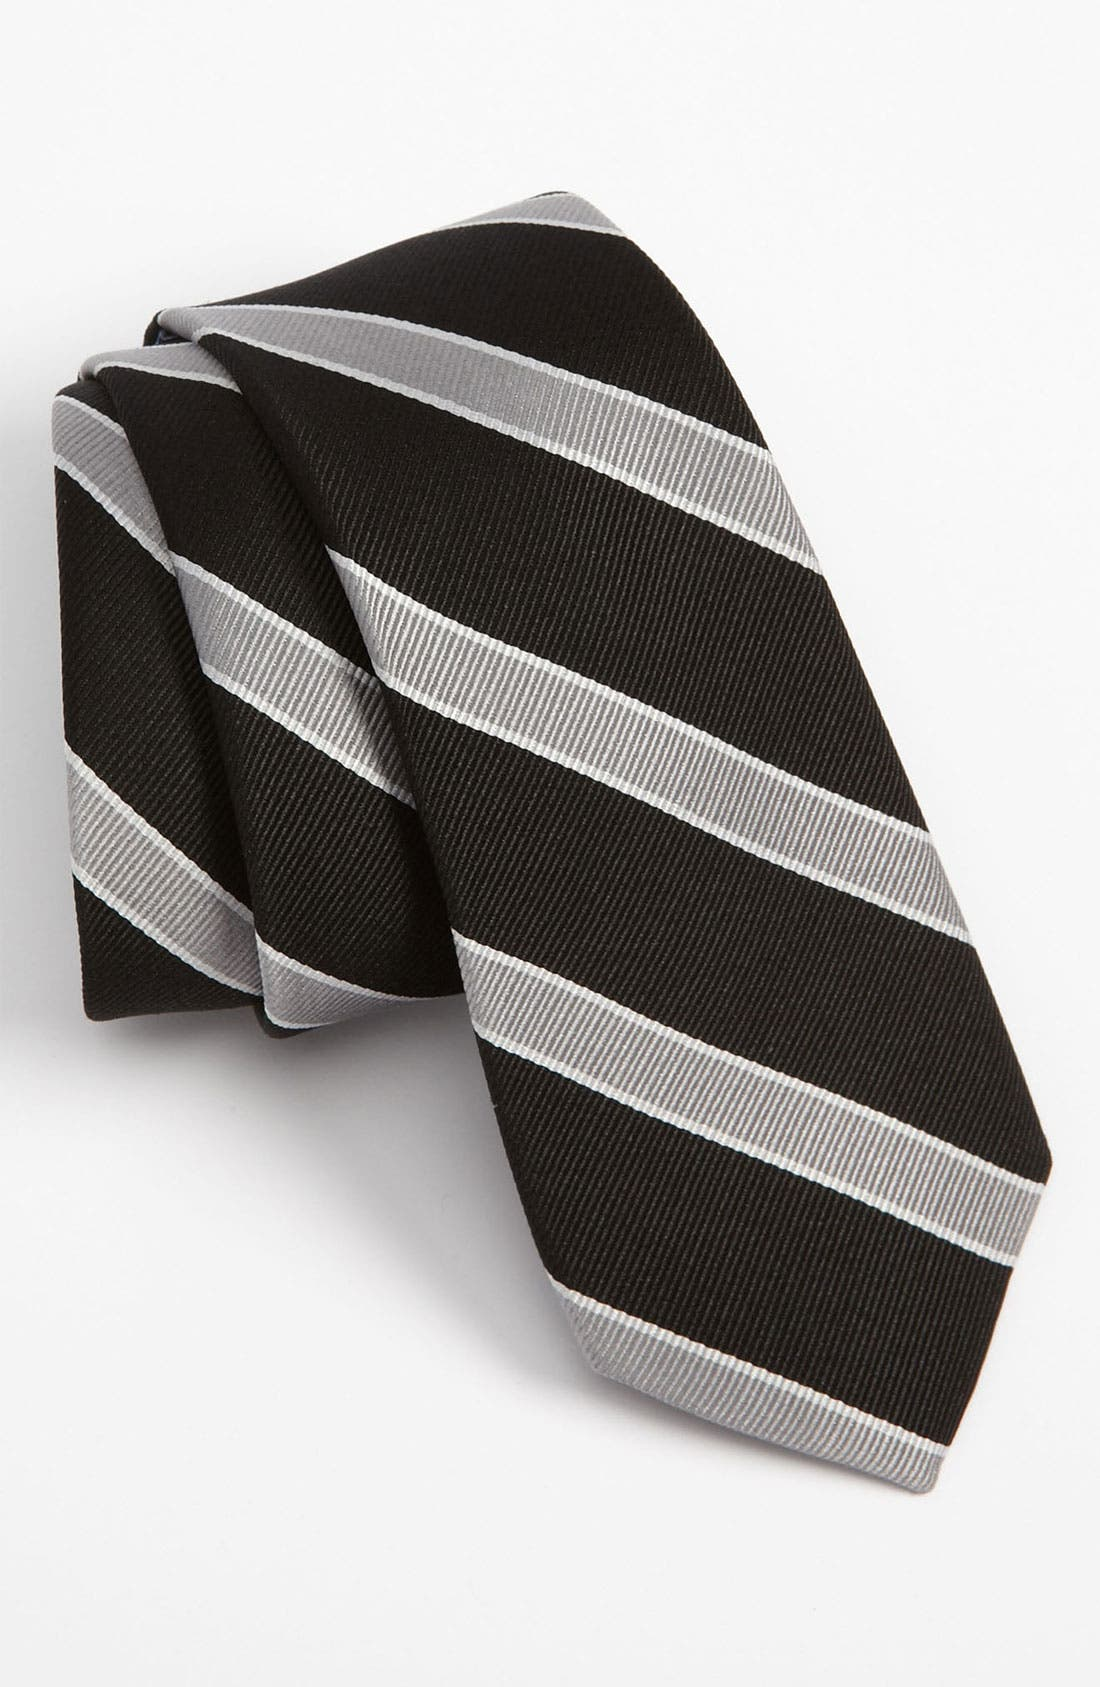 Main Image - The Tie Bar Woven Silk Tie